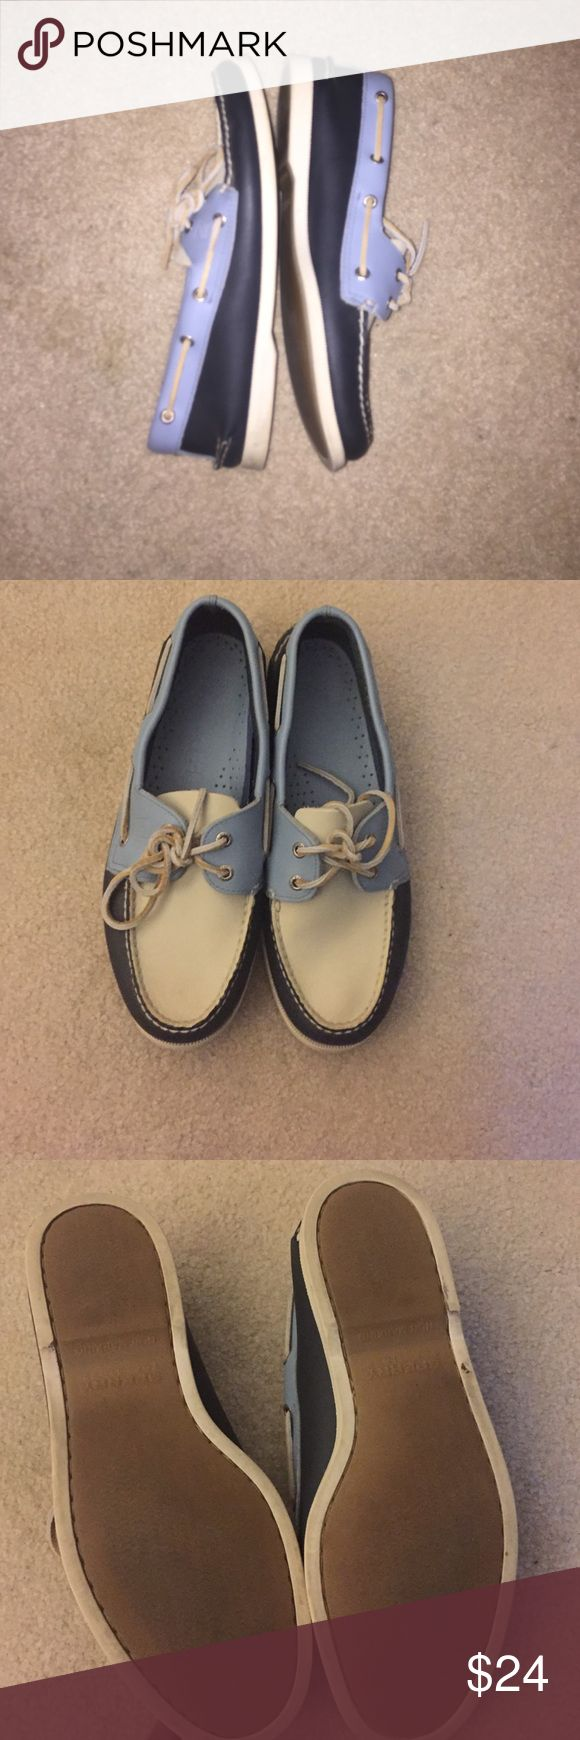 SPERRY men's boat shoes size 10 Gently worn multi color SPERRY boat shoes for men. Shoes are navy, light blue and cream. Soles look just like new & there are no stains, tears or fading. Sperry Shoes